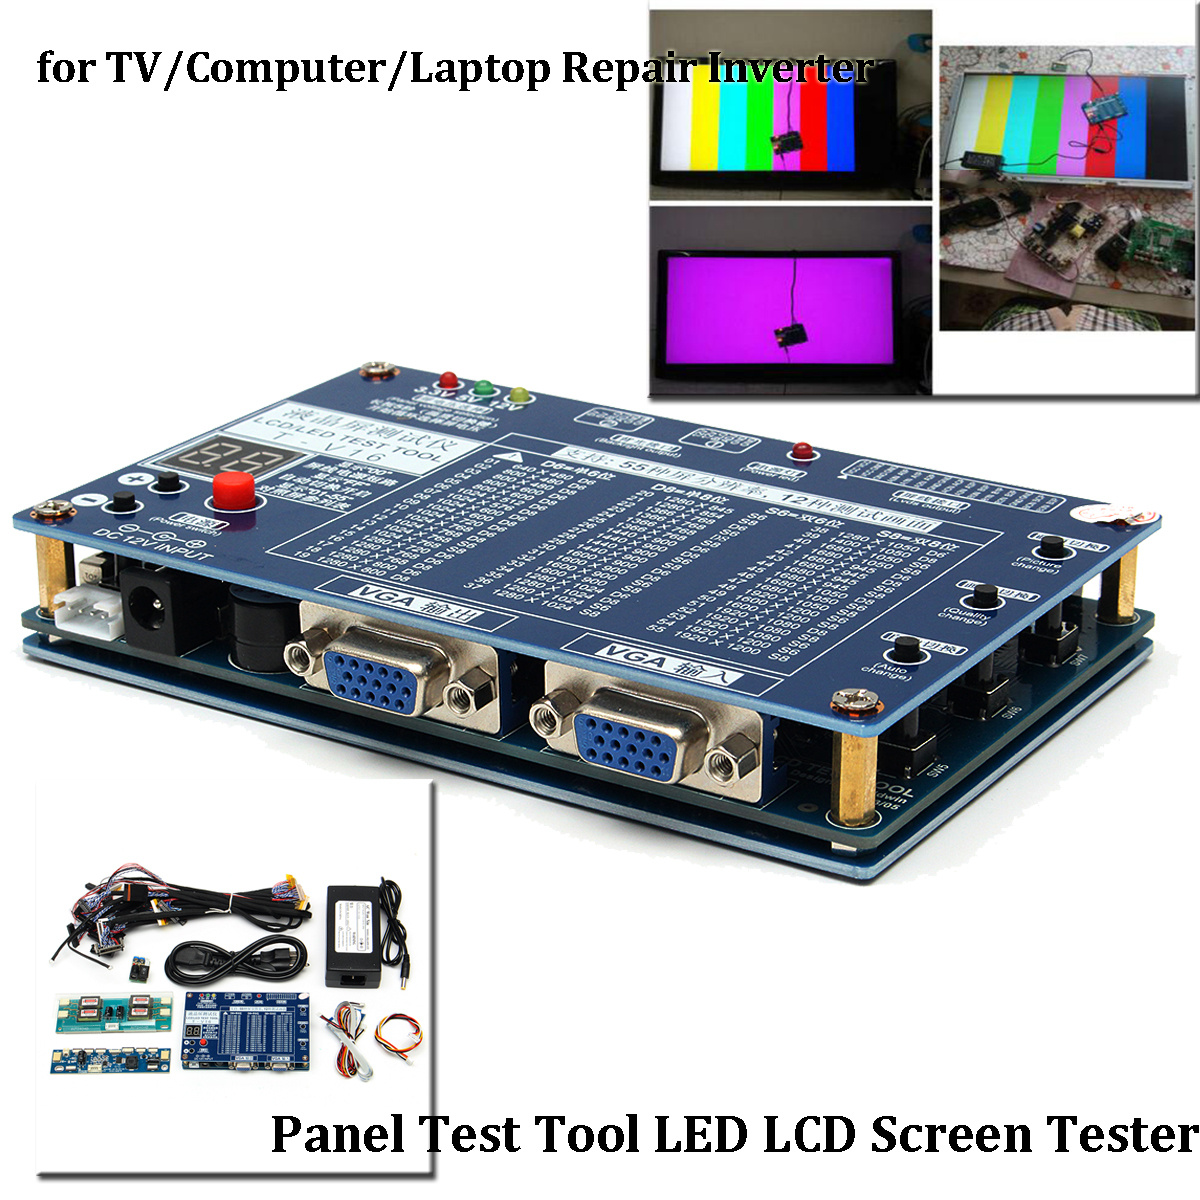 Panel Test Tool LED LCD Screen Tester Inverter Repair For TV/Computer/Laptop